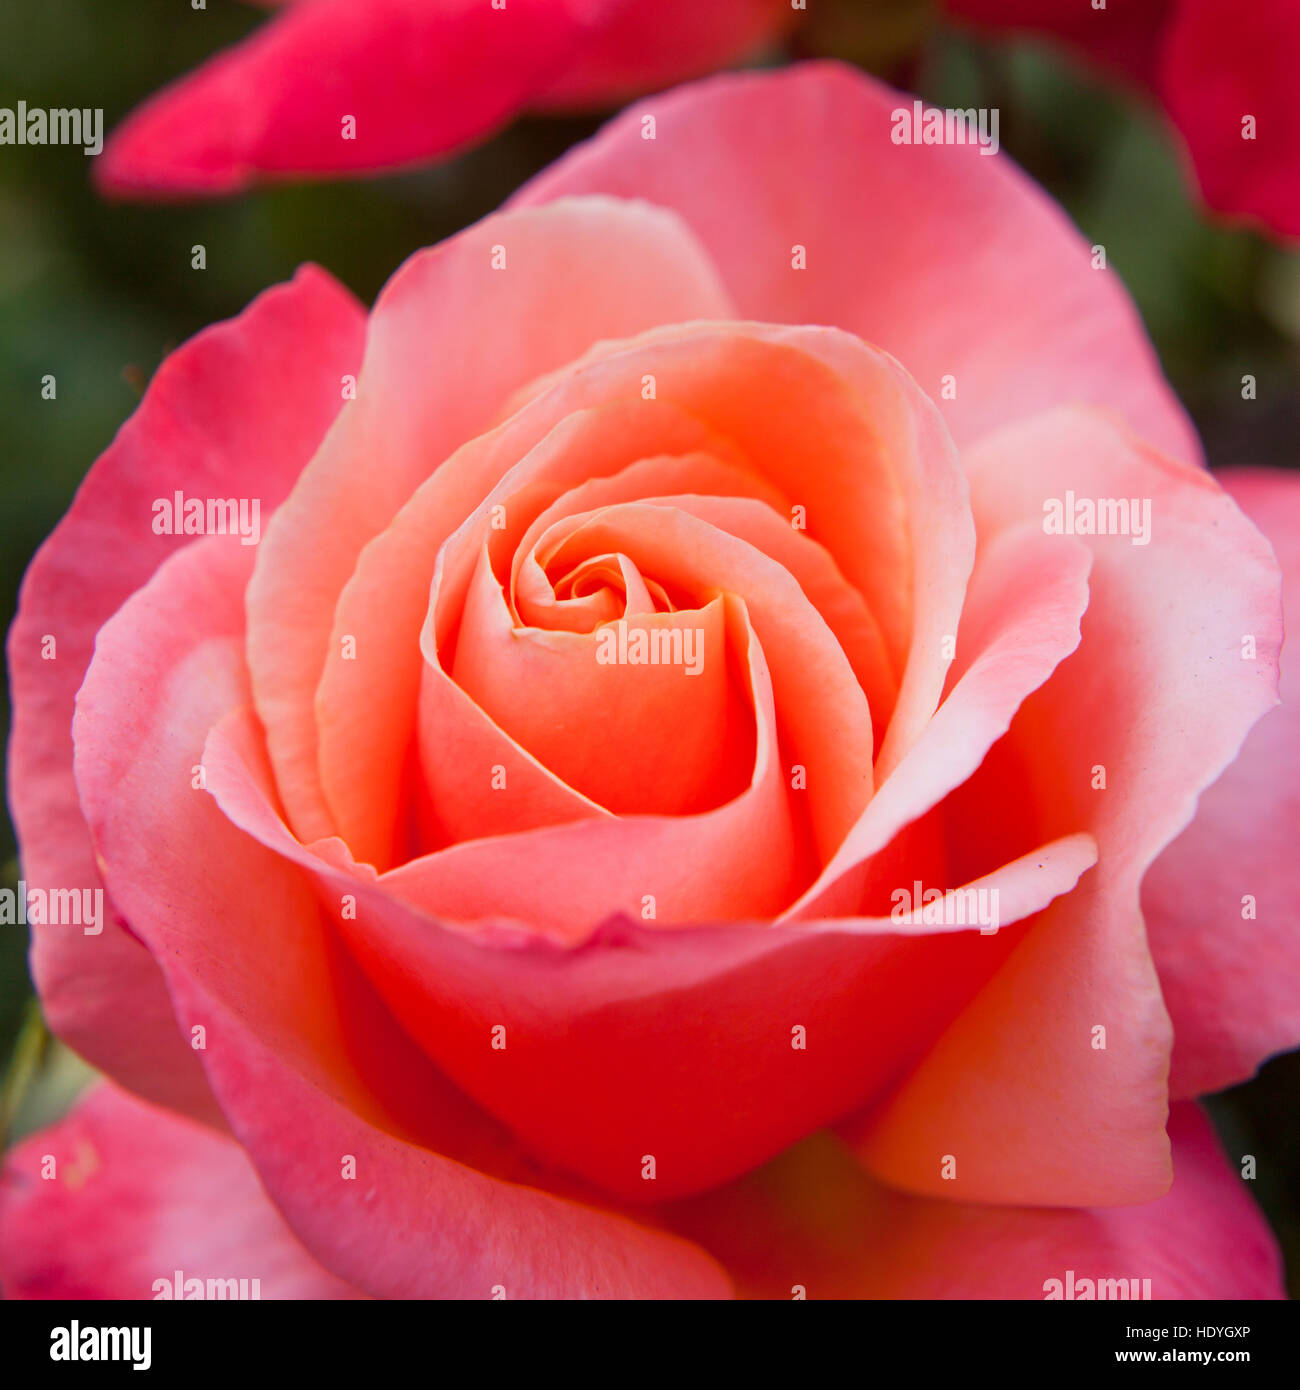 Big Fresh Pink Roses Beautiful Natural Flowers Stock Photo